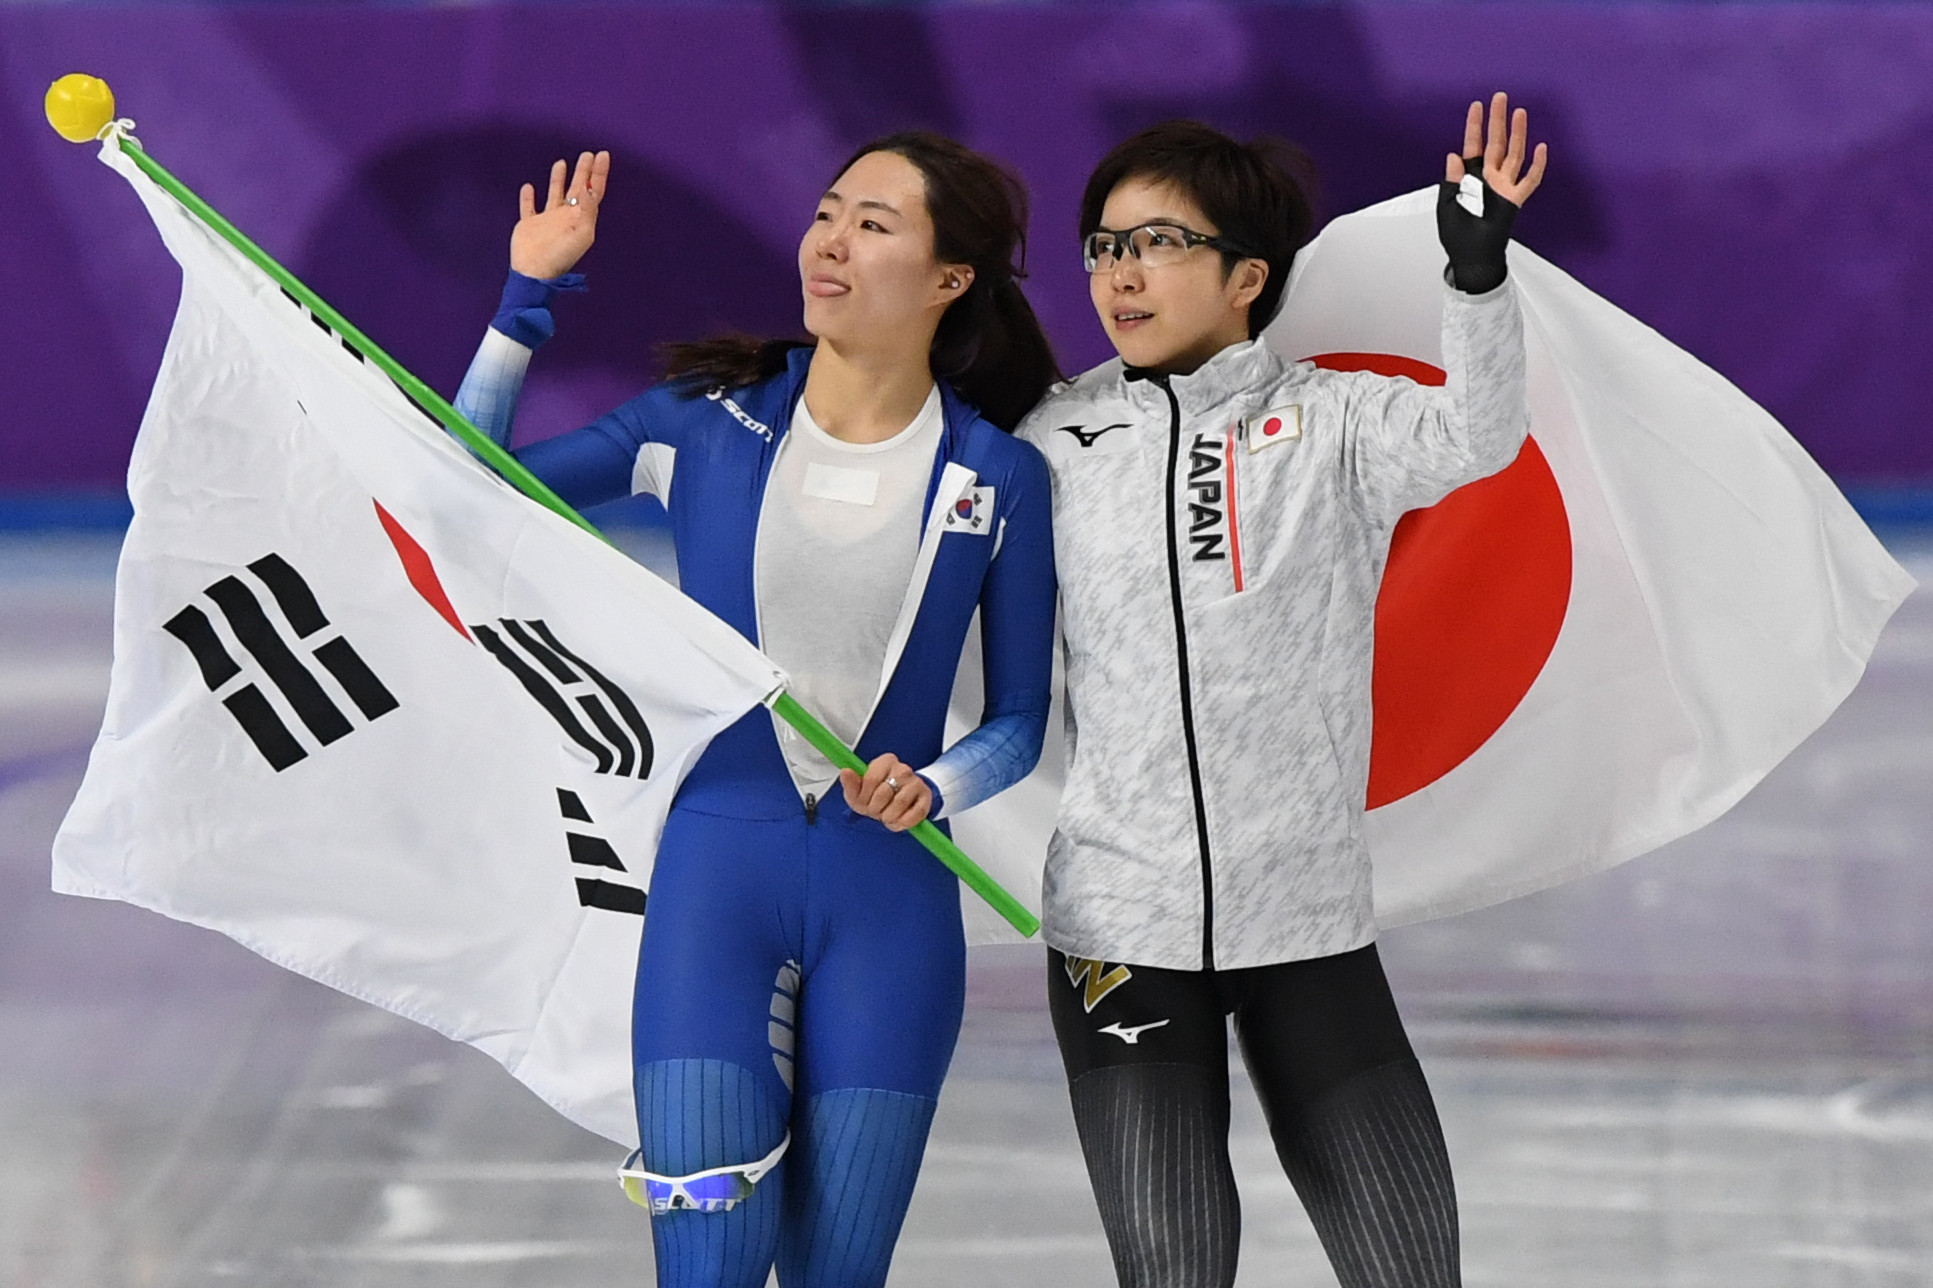 Japan's Nao Kodaira and South Korea's Lee Sang-hwa pose together after the 500m competition ©Getty Images